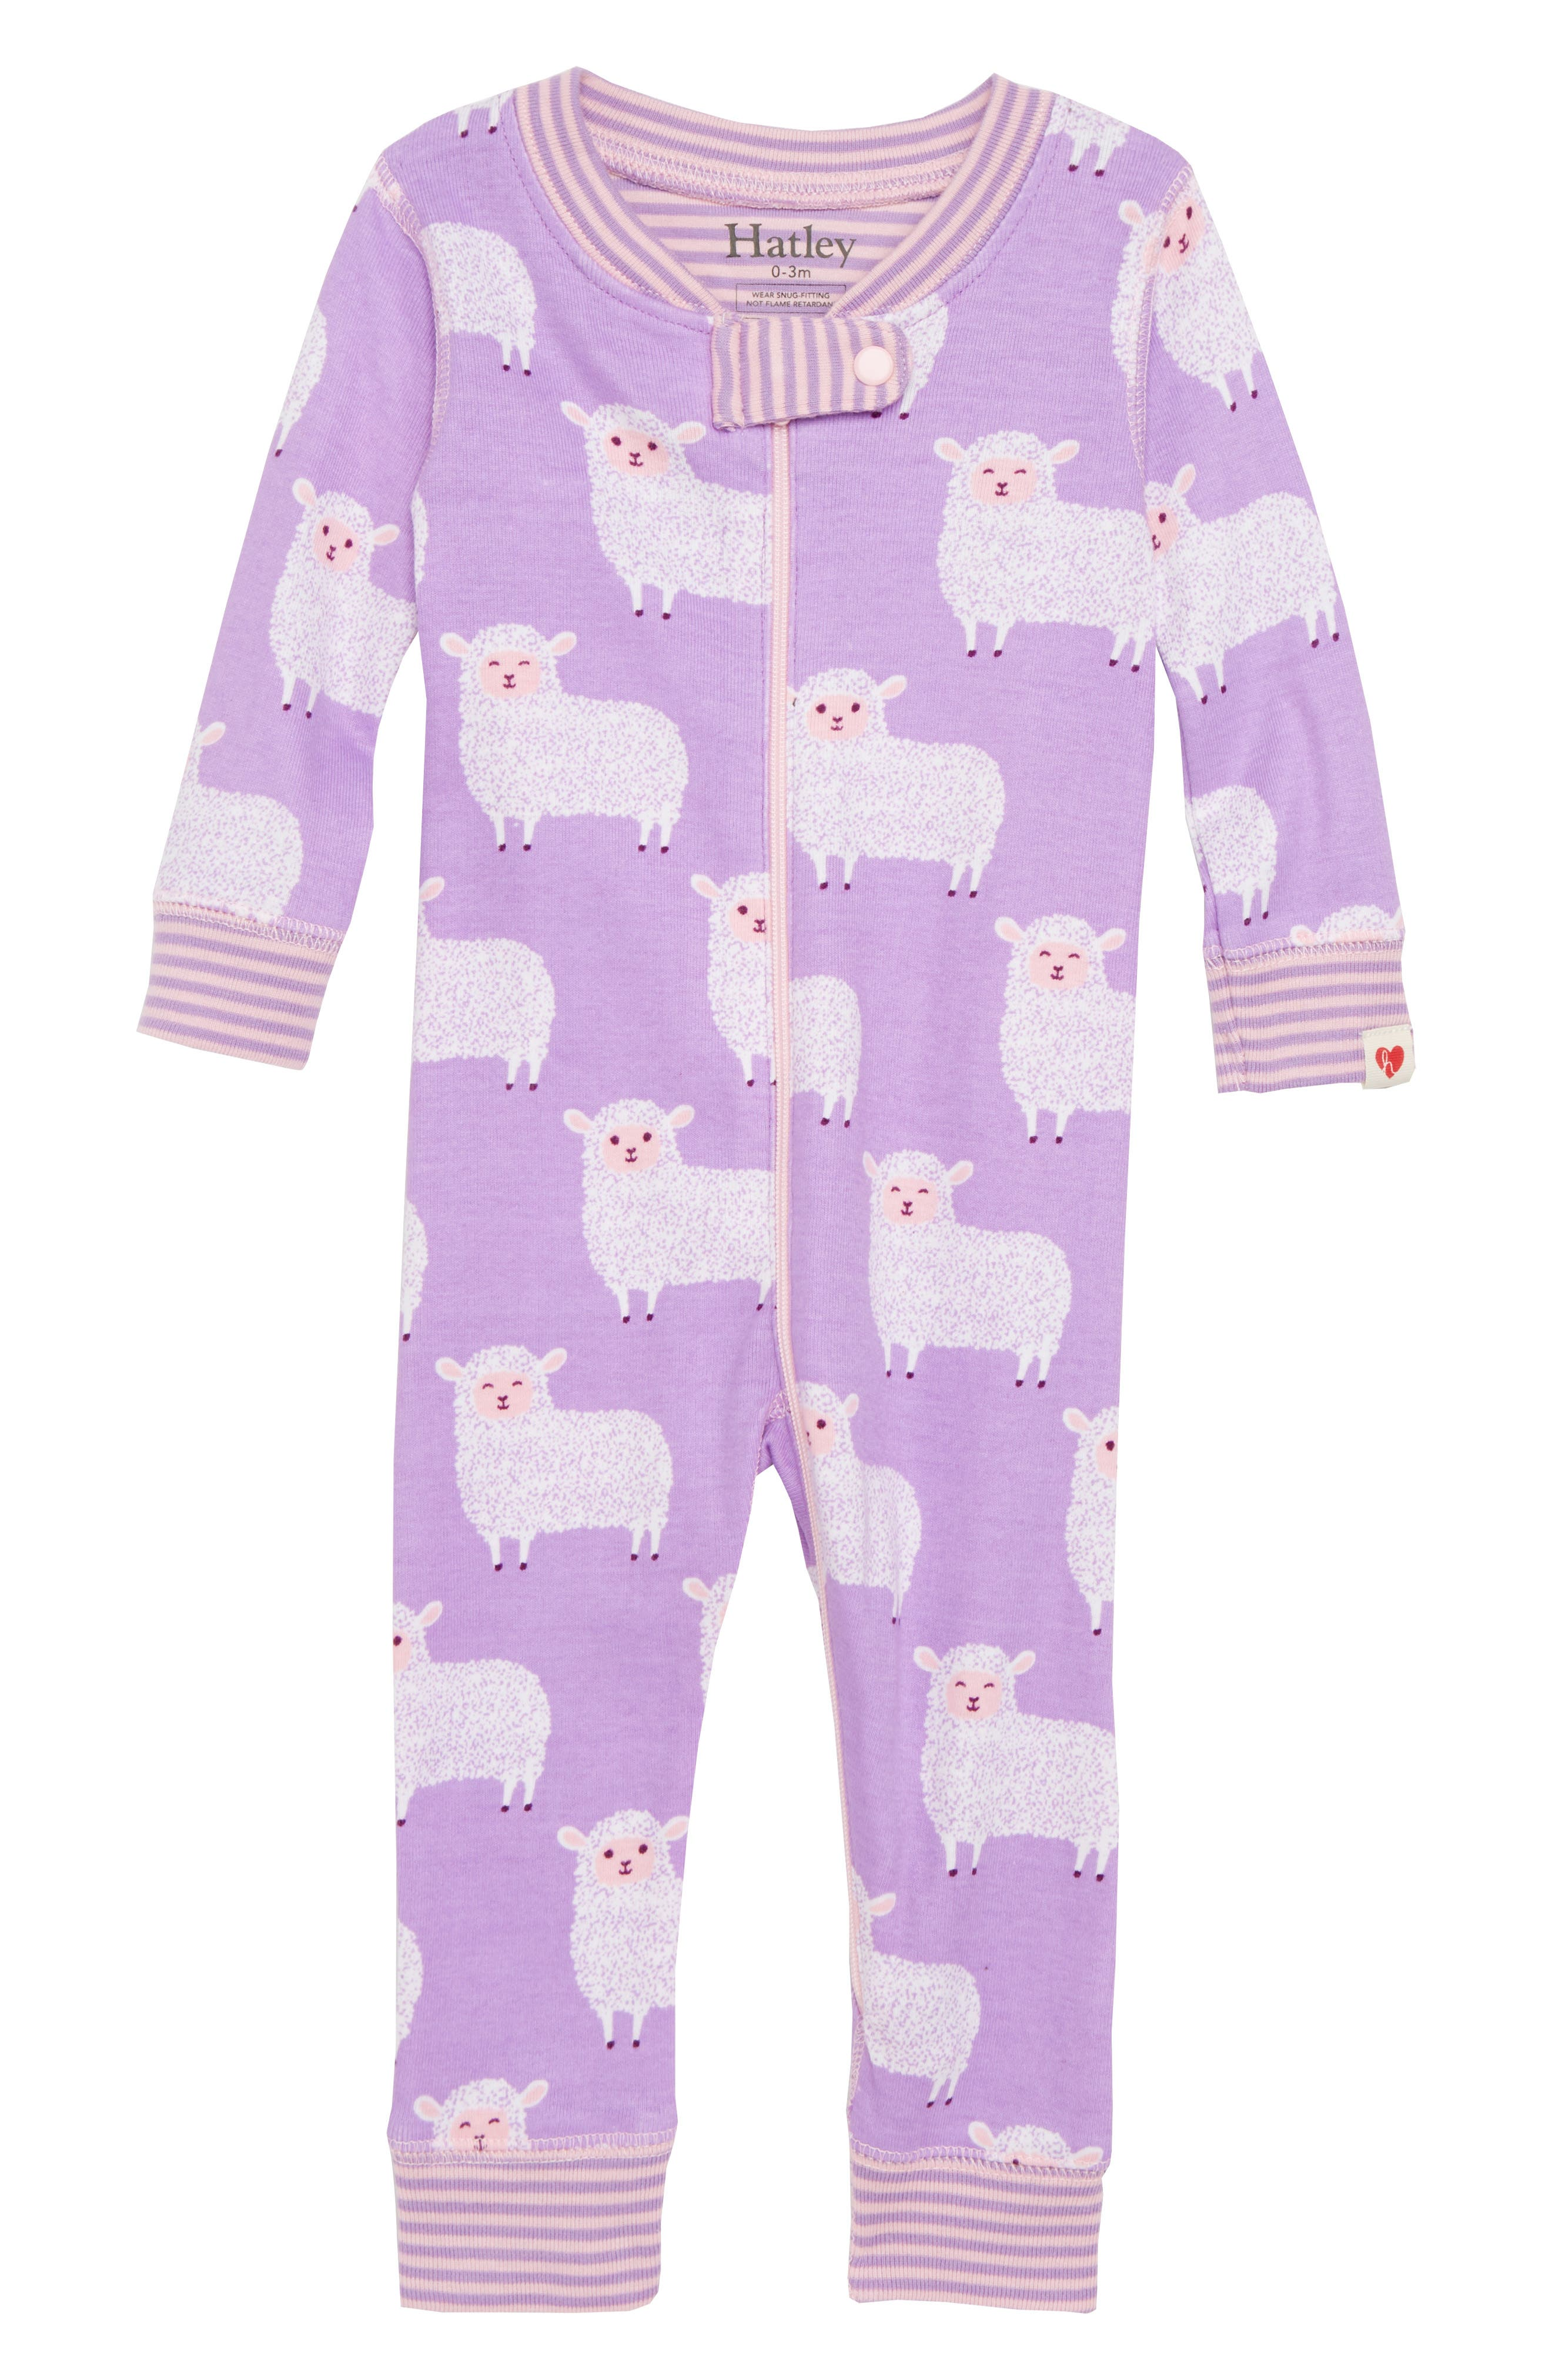 Counting Sheep Fitted One-Piece Pajamas,                         Main,                         color, Counting Sheep